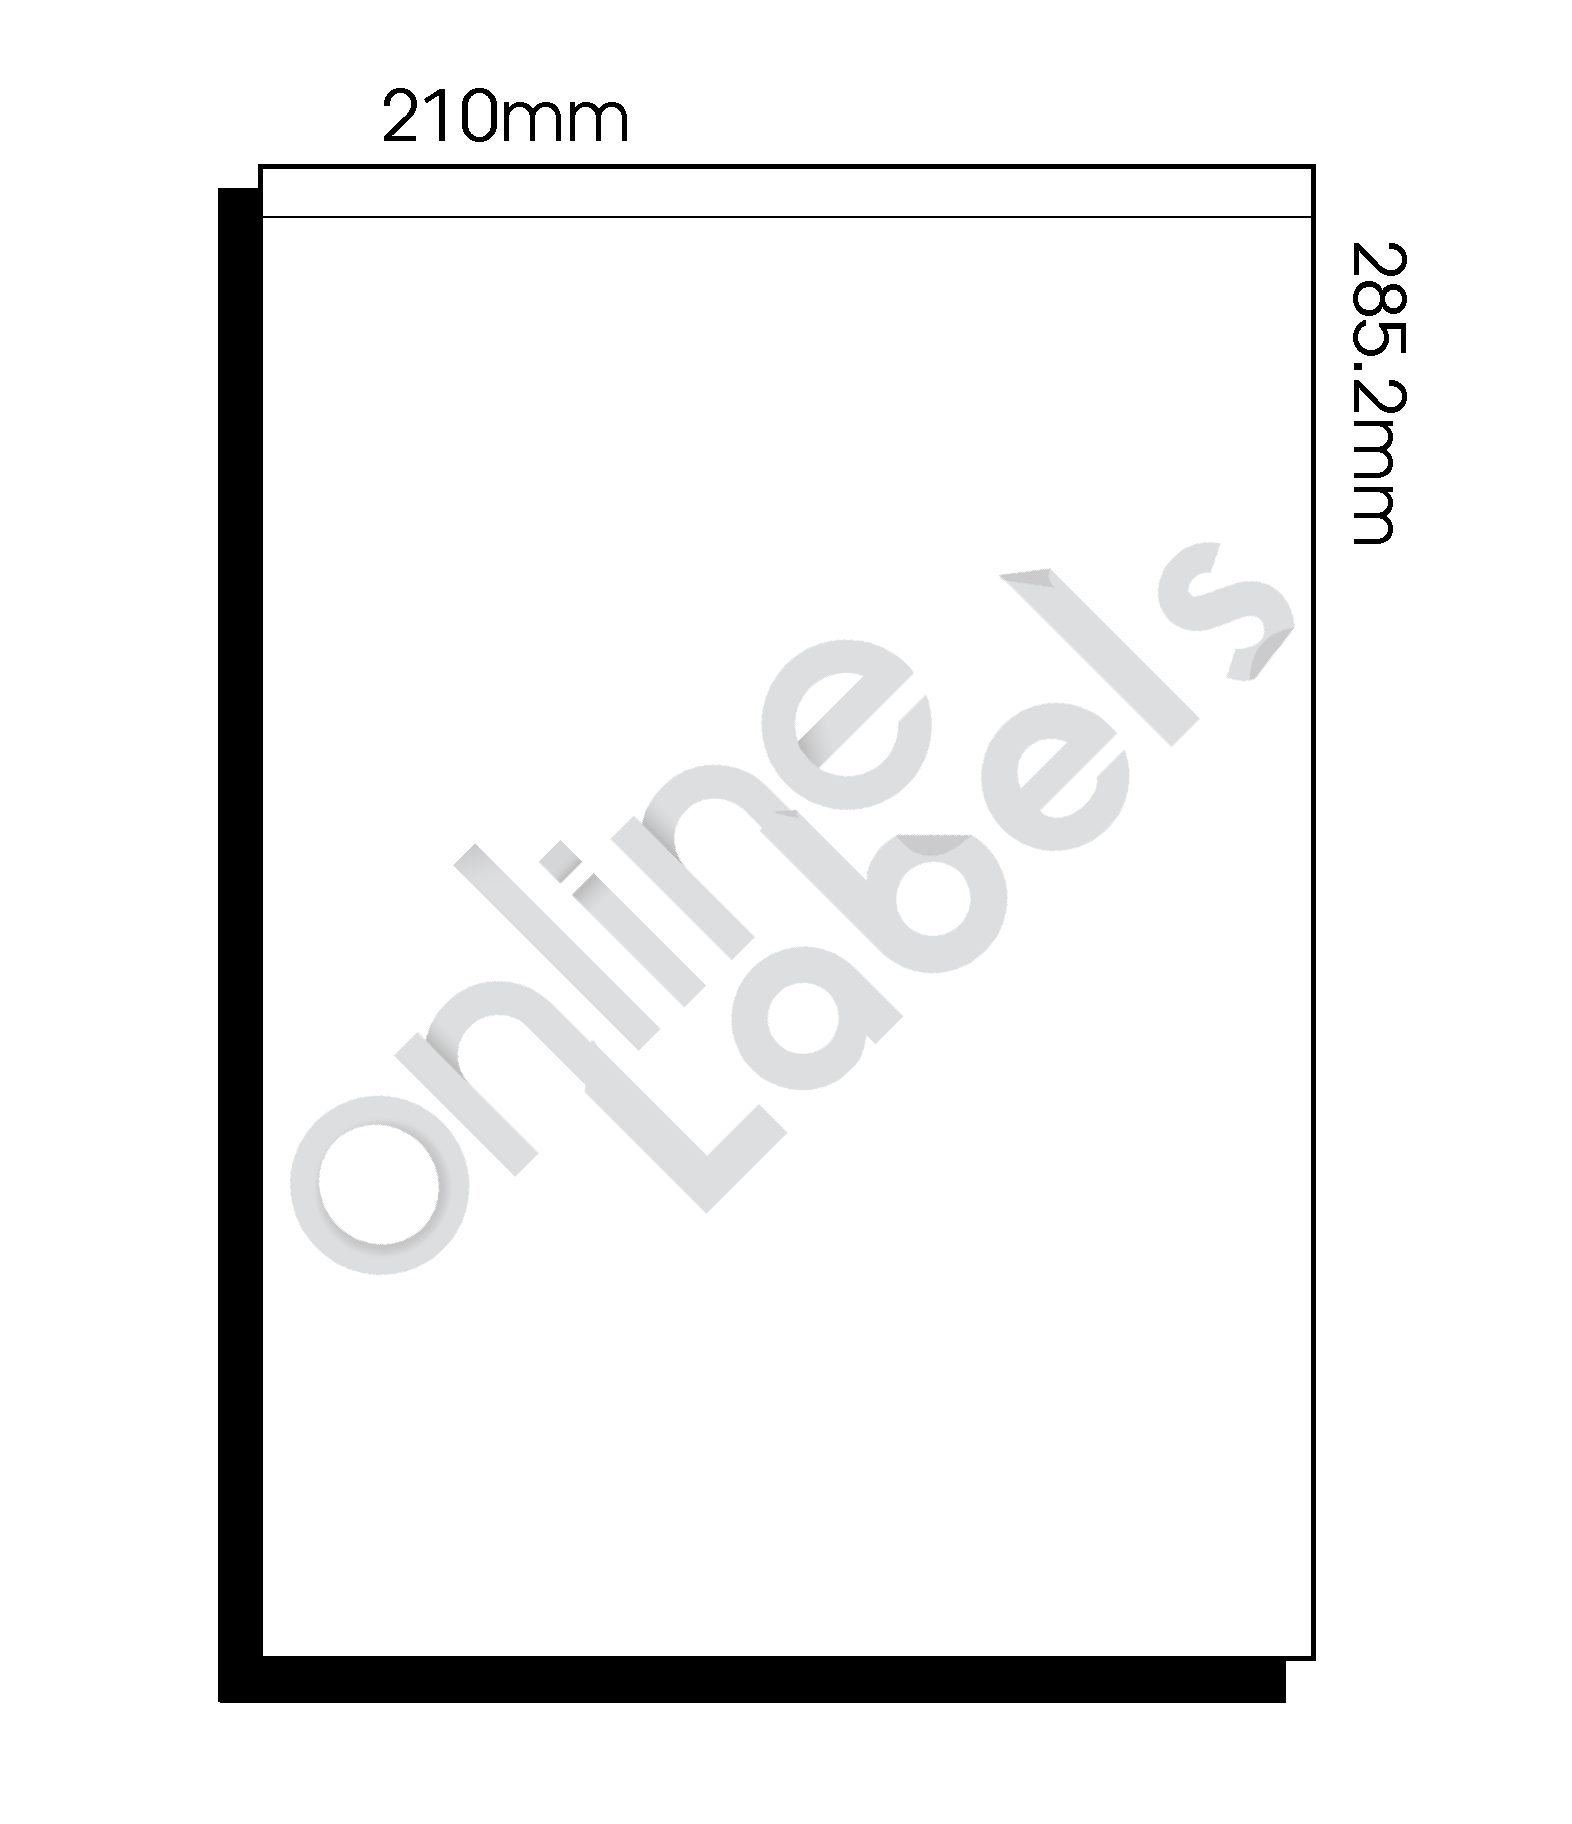 210mm x 285.2mm (002) – 1 Label per Sheet